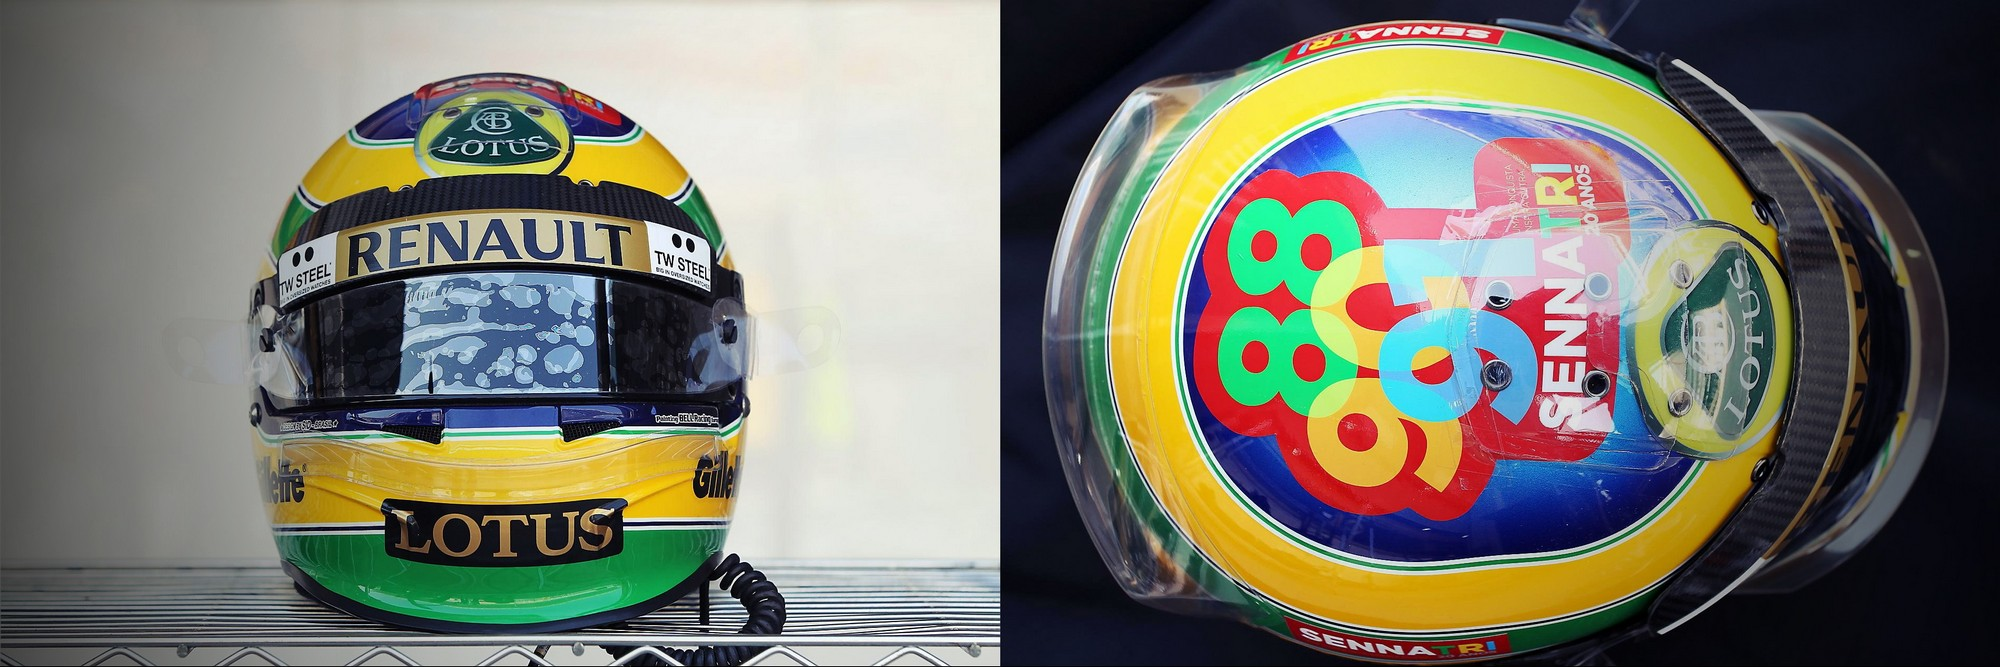 Шлем Бруно Сенны на Гран-При Кореи 2011 года | 2011 Korean Grand Prix helmet of Bruno Senna